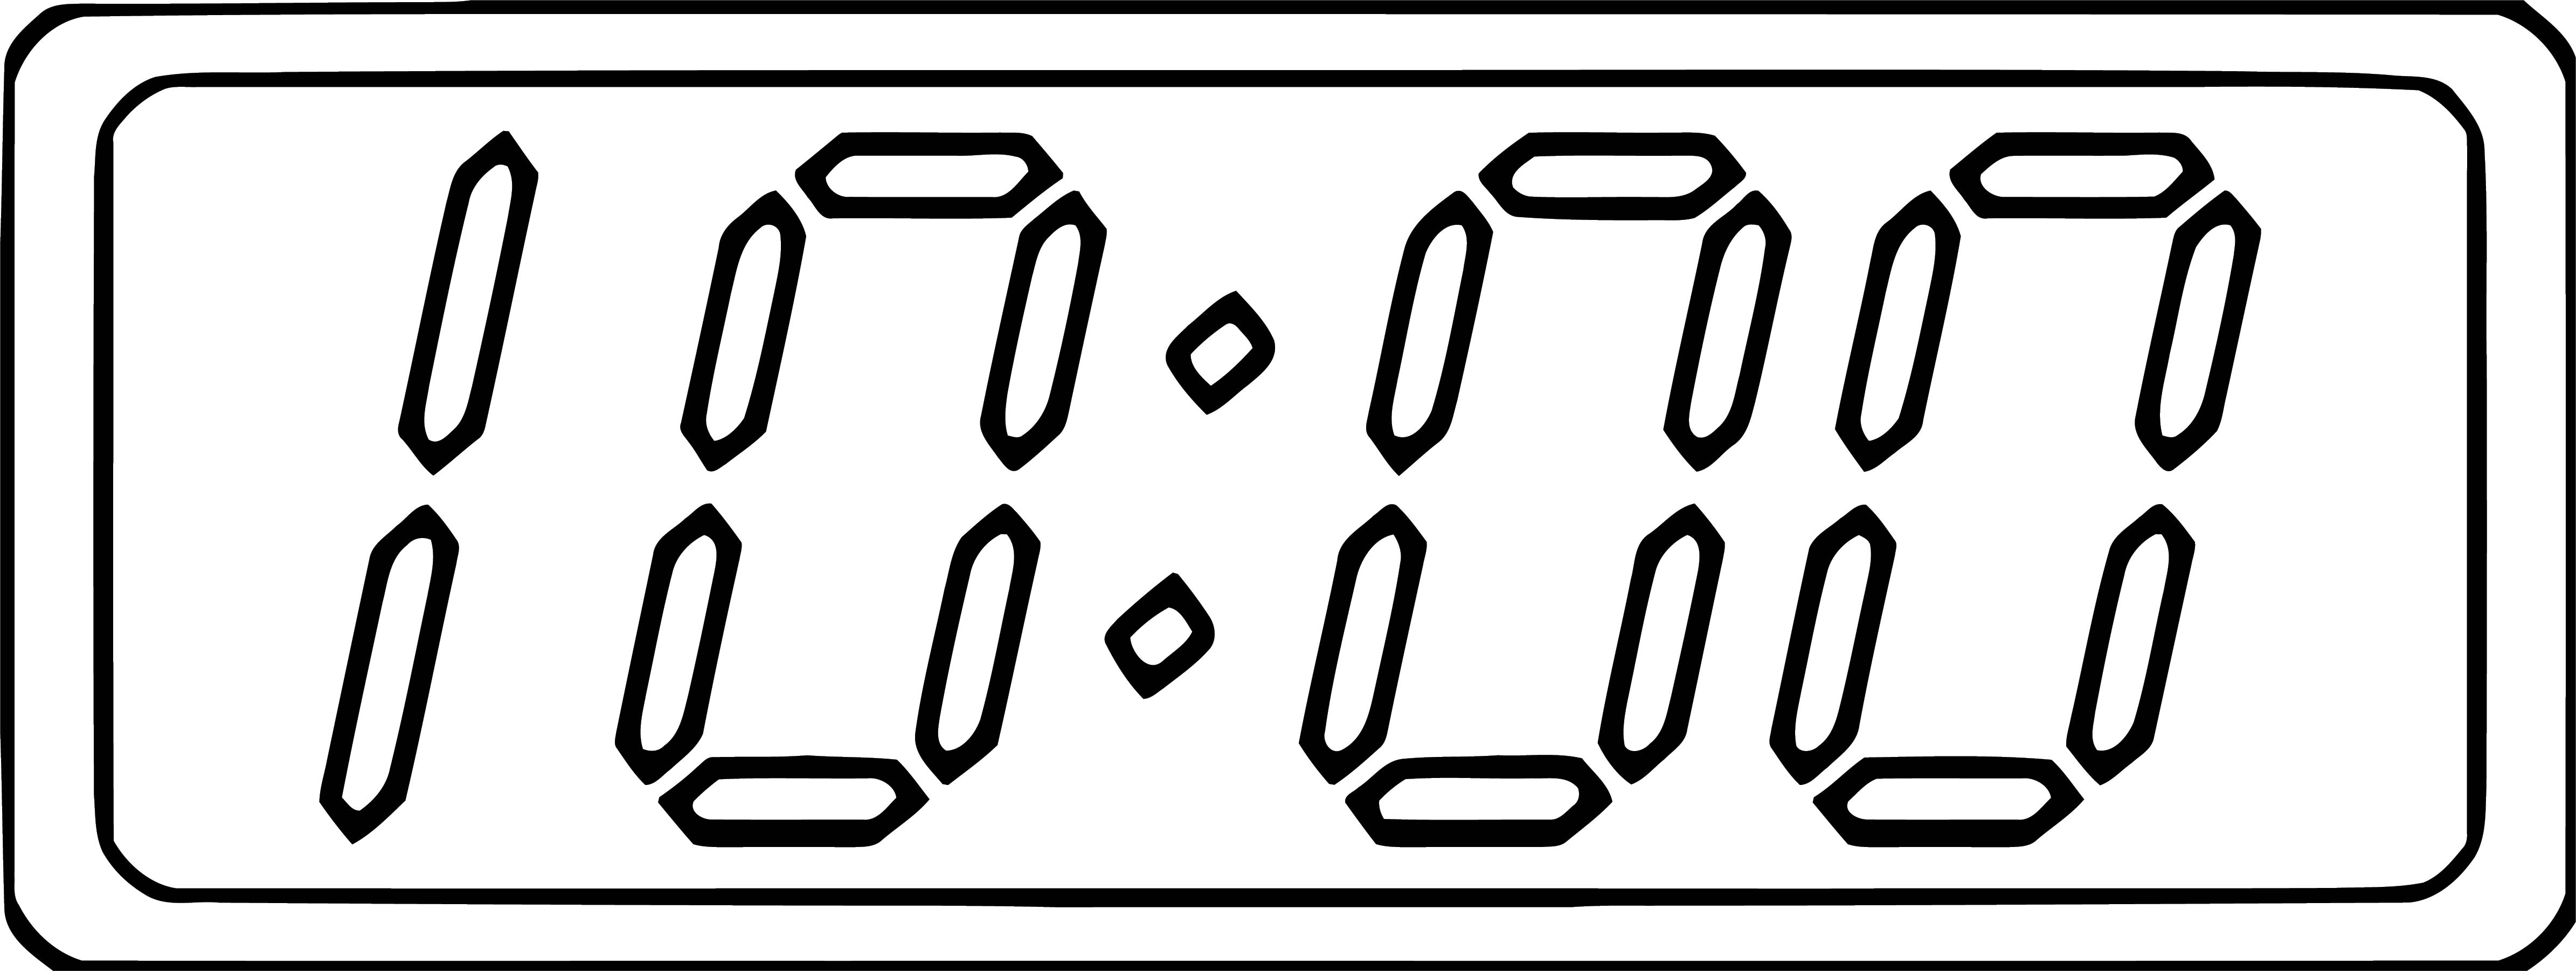 Digital Clock Clip Art Black And White 1038 Free Printable 57 Cartoonized Free Printable Coloring Page